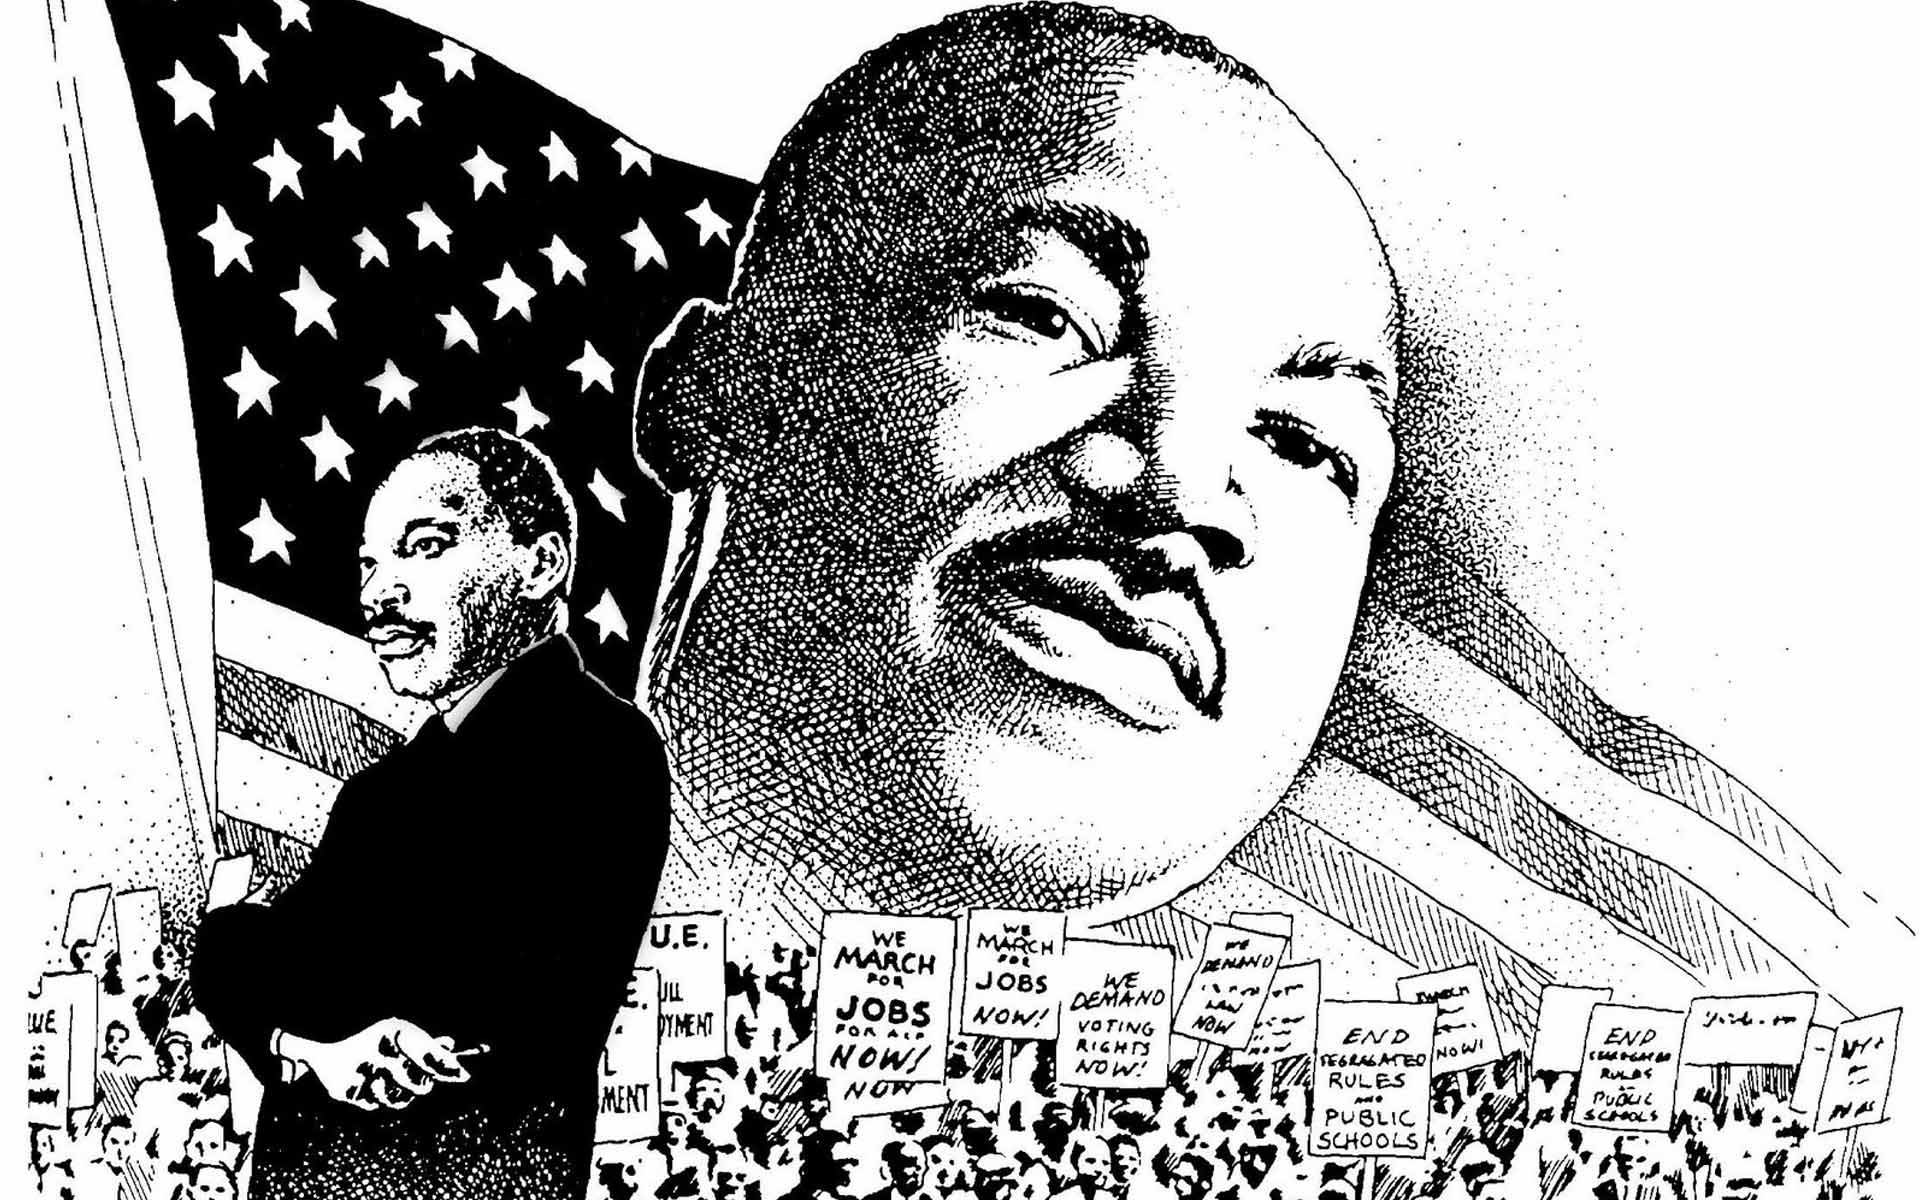 martin luther king photos free | Martin Luther King Jr Wallpaper ...